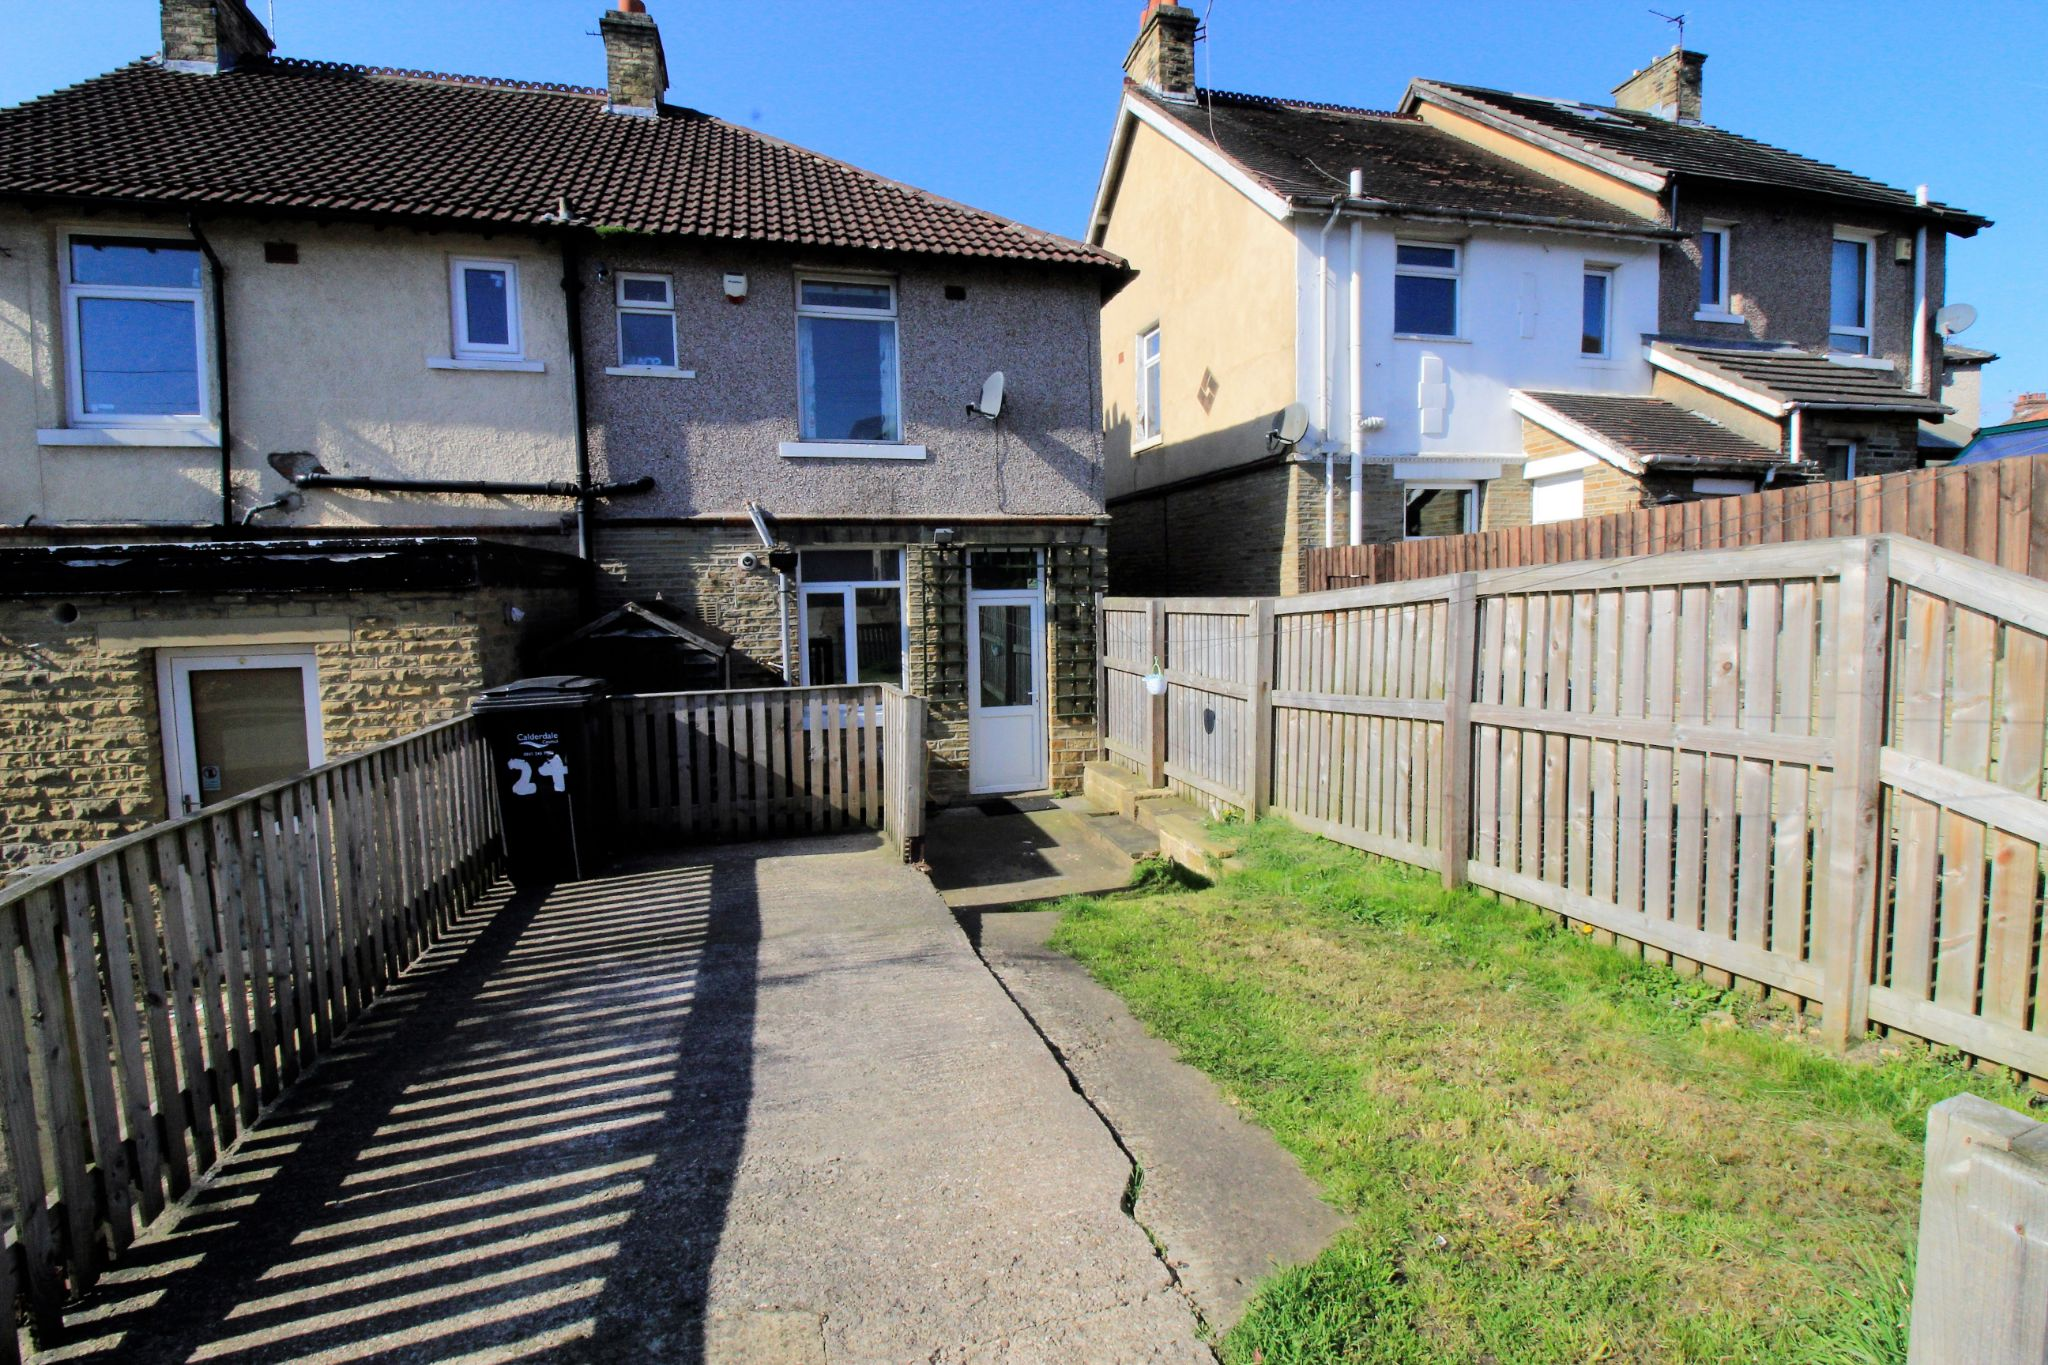 2 bedroom end terraced house SSTC in Brighouse - Photograph 17